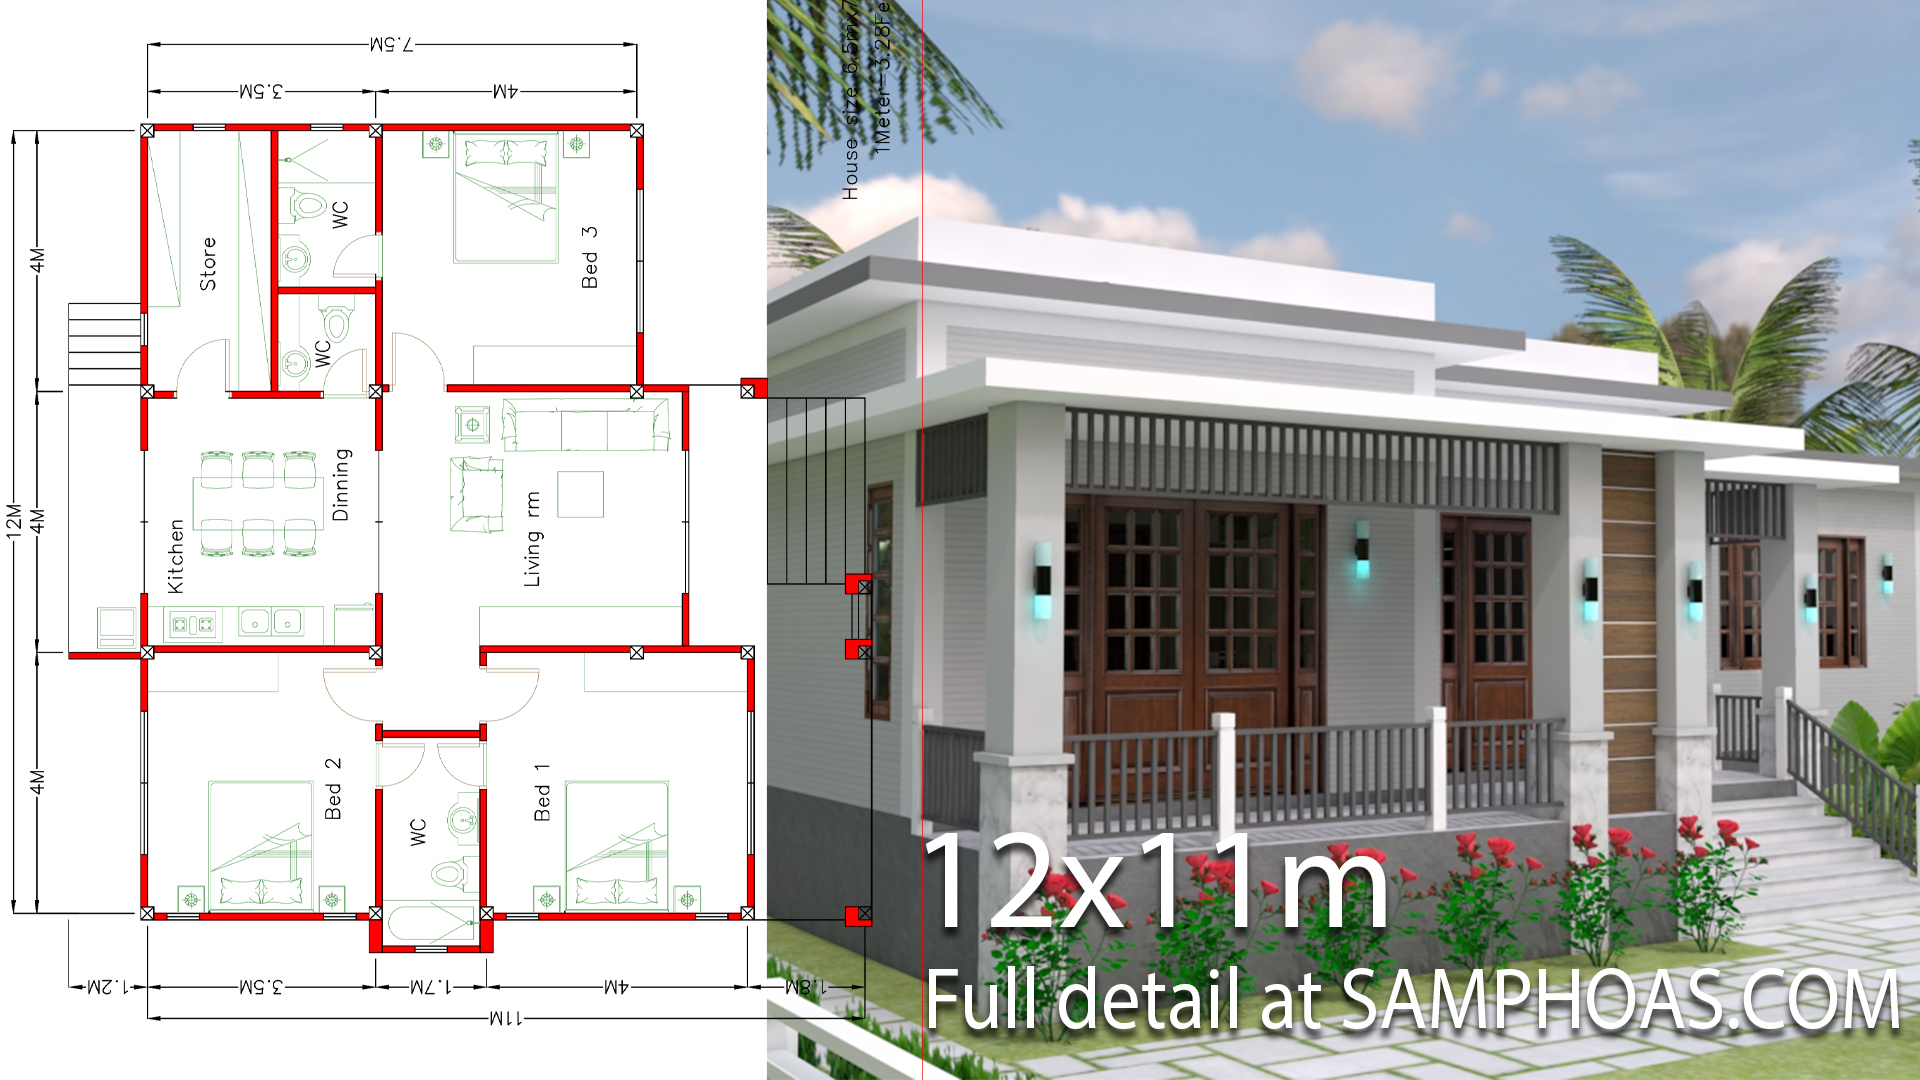 House Plans 12x11m with 3 Bedrooms - House Plans Free Downloads